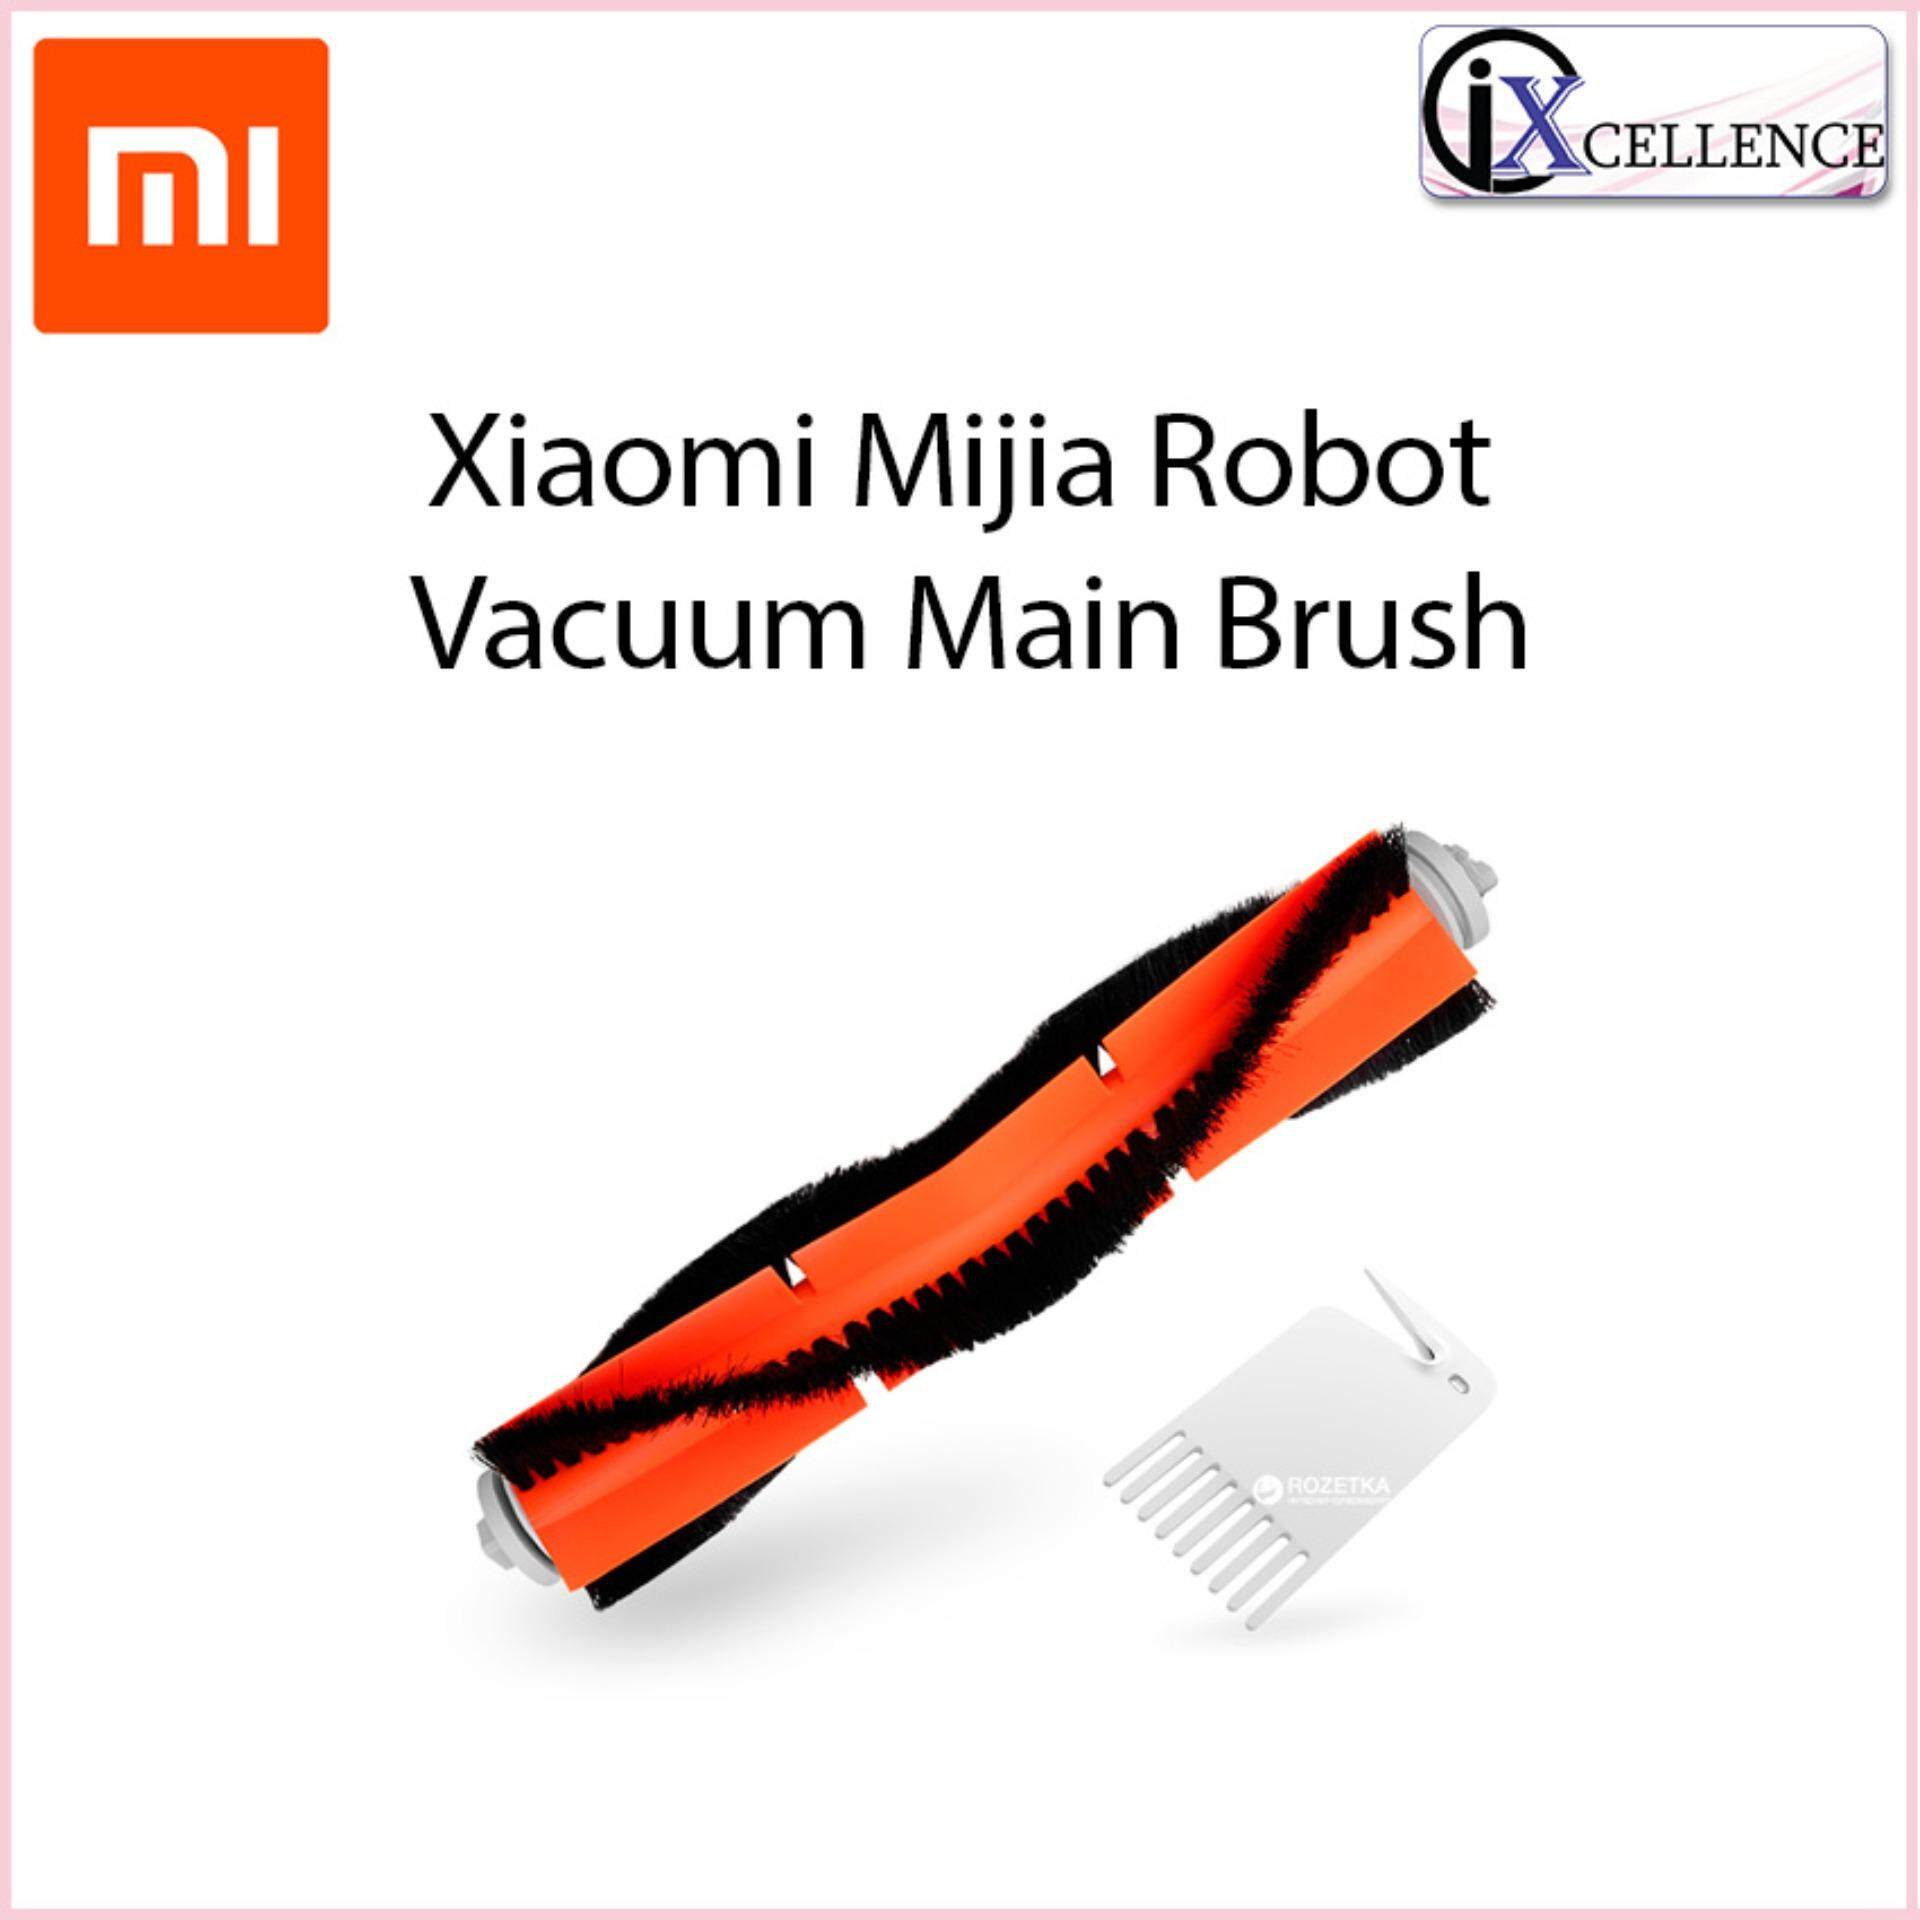 [IX] Xiaomi Mijia Robot Vacuum Main Brush (Orange)